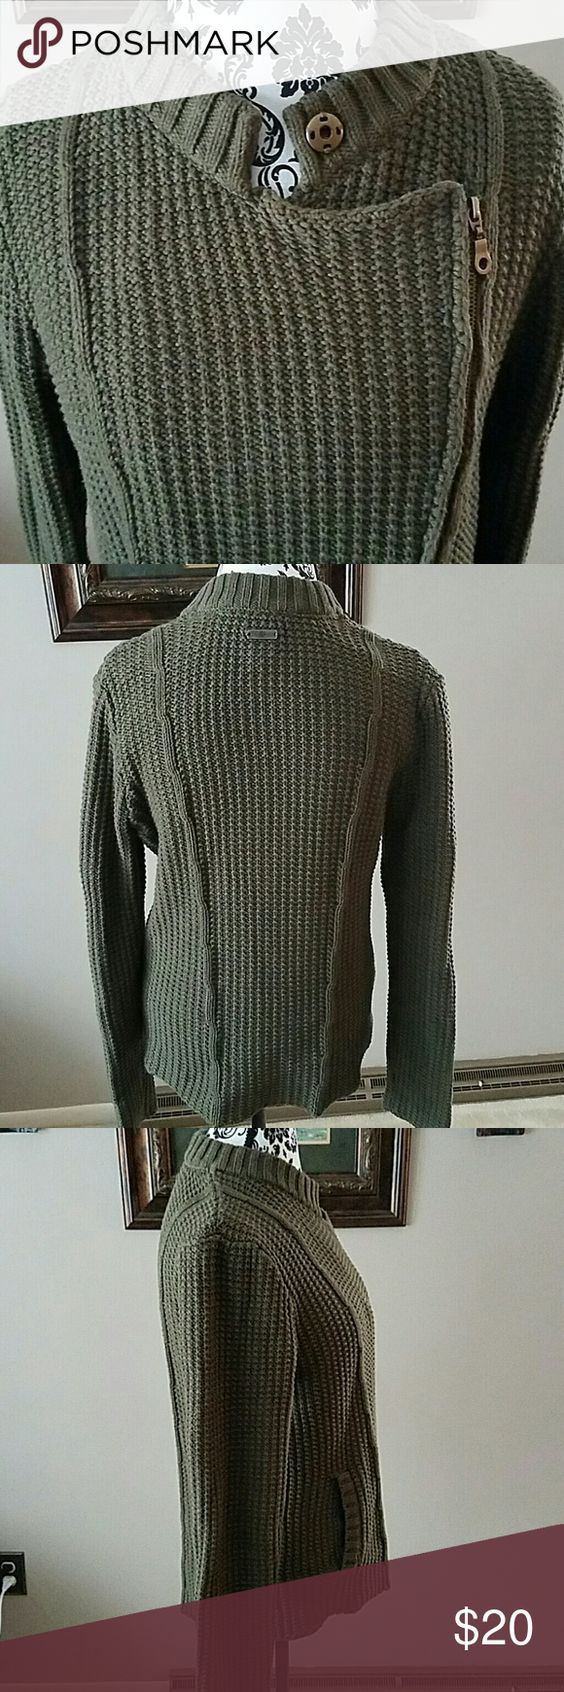 ASYMMETRIC ZIP SWEATER This is a great heavy knit sweater featuring: - exposed asymetric zipper - ribbed collar with optional snap to close - front pockets with ribbed trim - vertical side crocheted lines are slimming - 60% Cotton,  40% Acrylic - In EUC Ruff Hewn Sweaters Crew & Scoop Necks